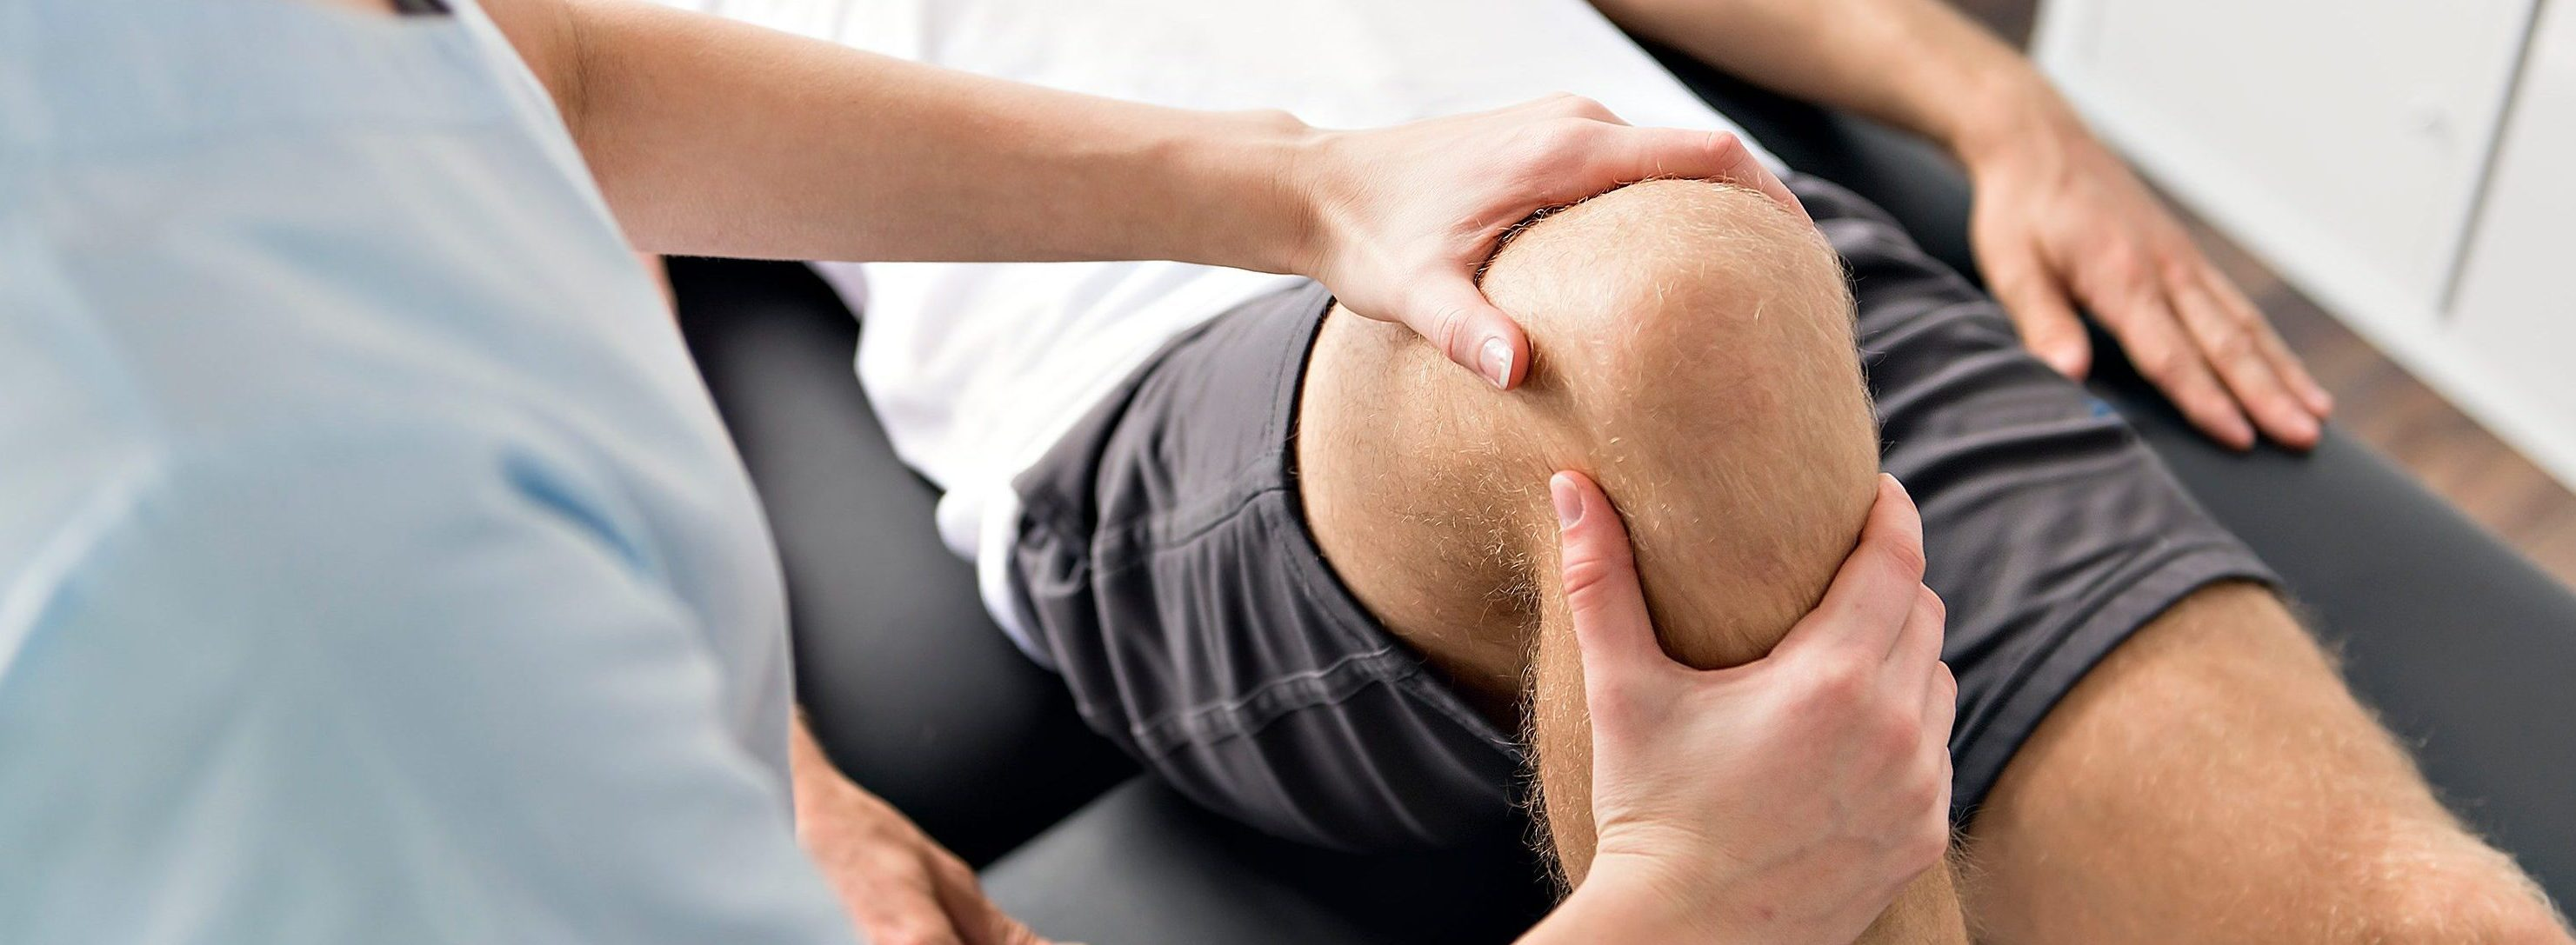 Knie Behandlung Physiotherapie